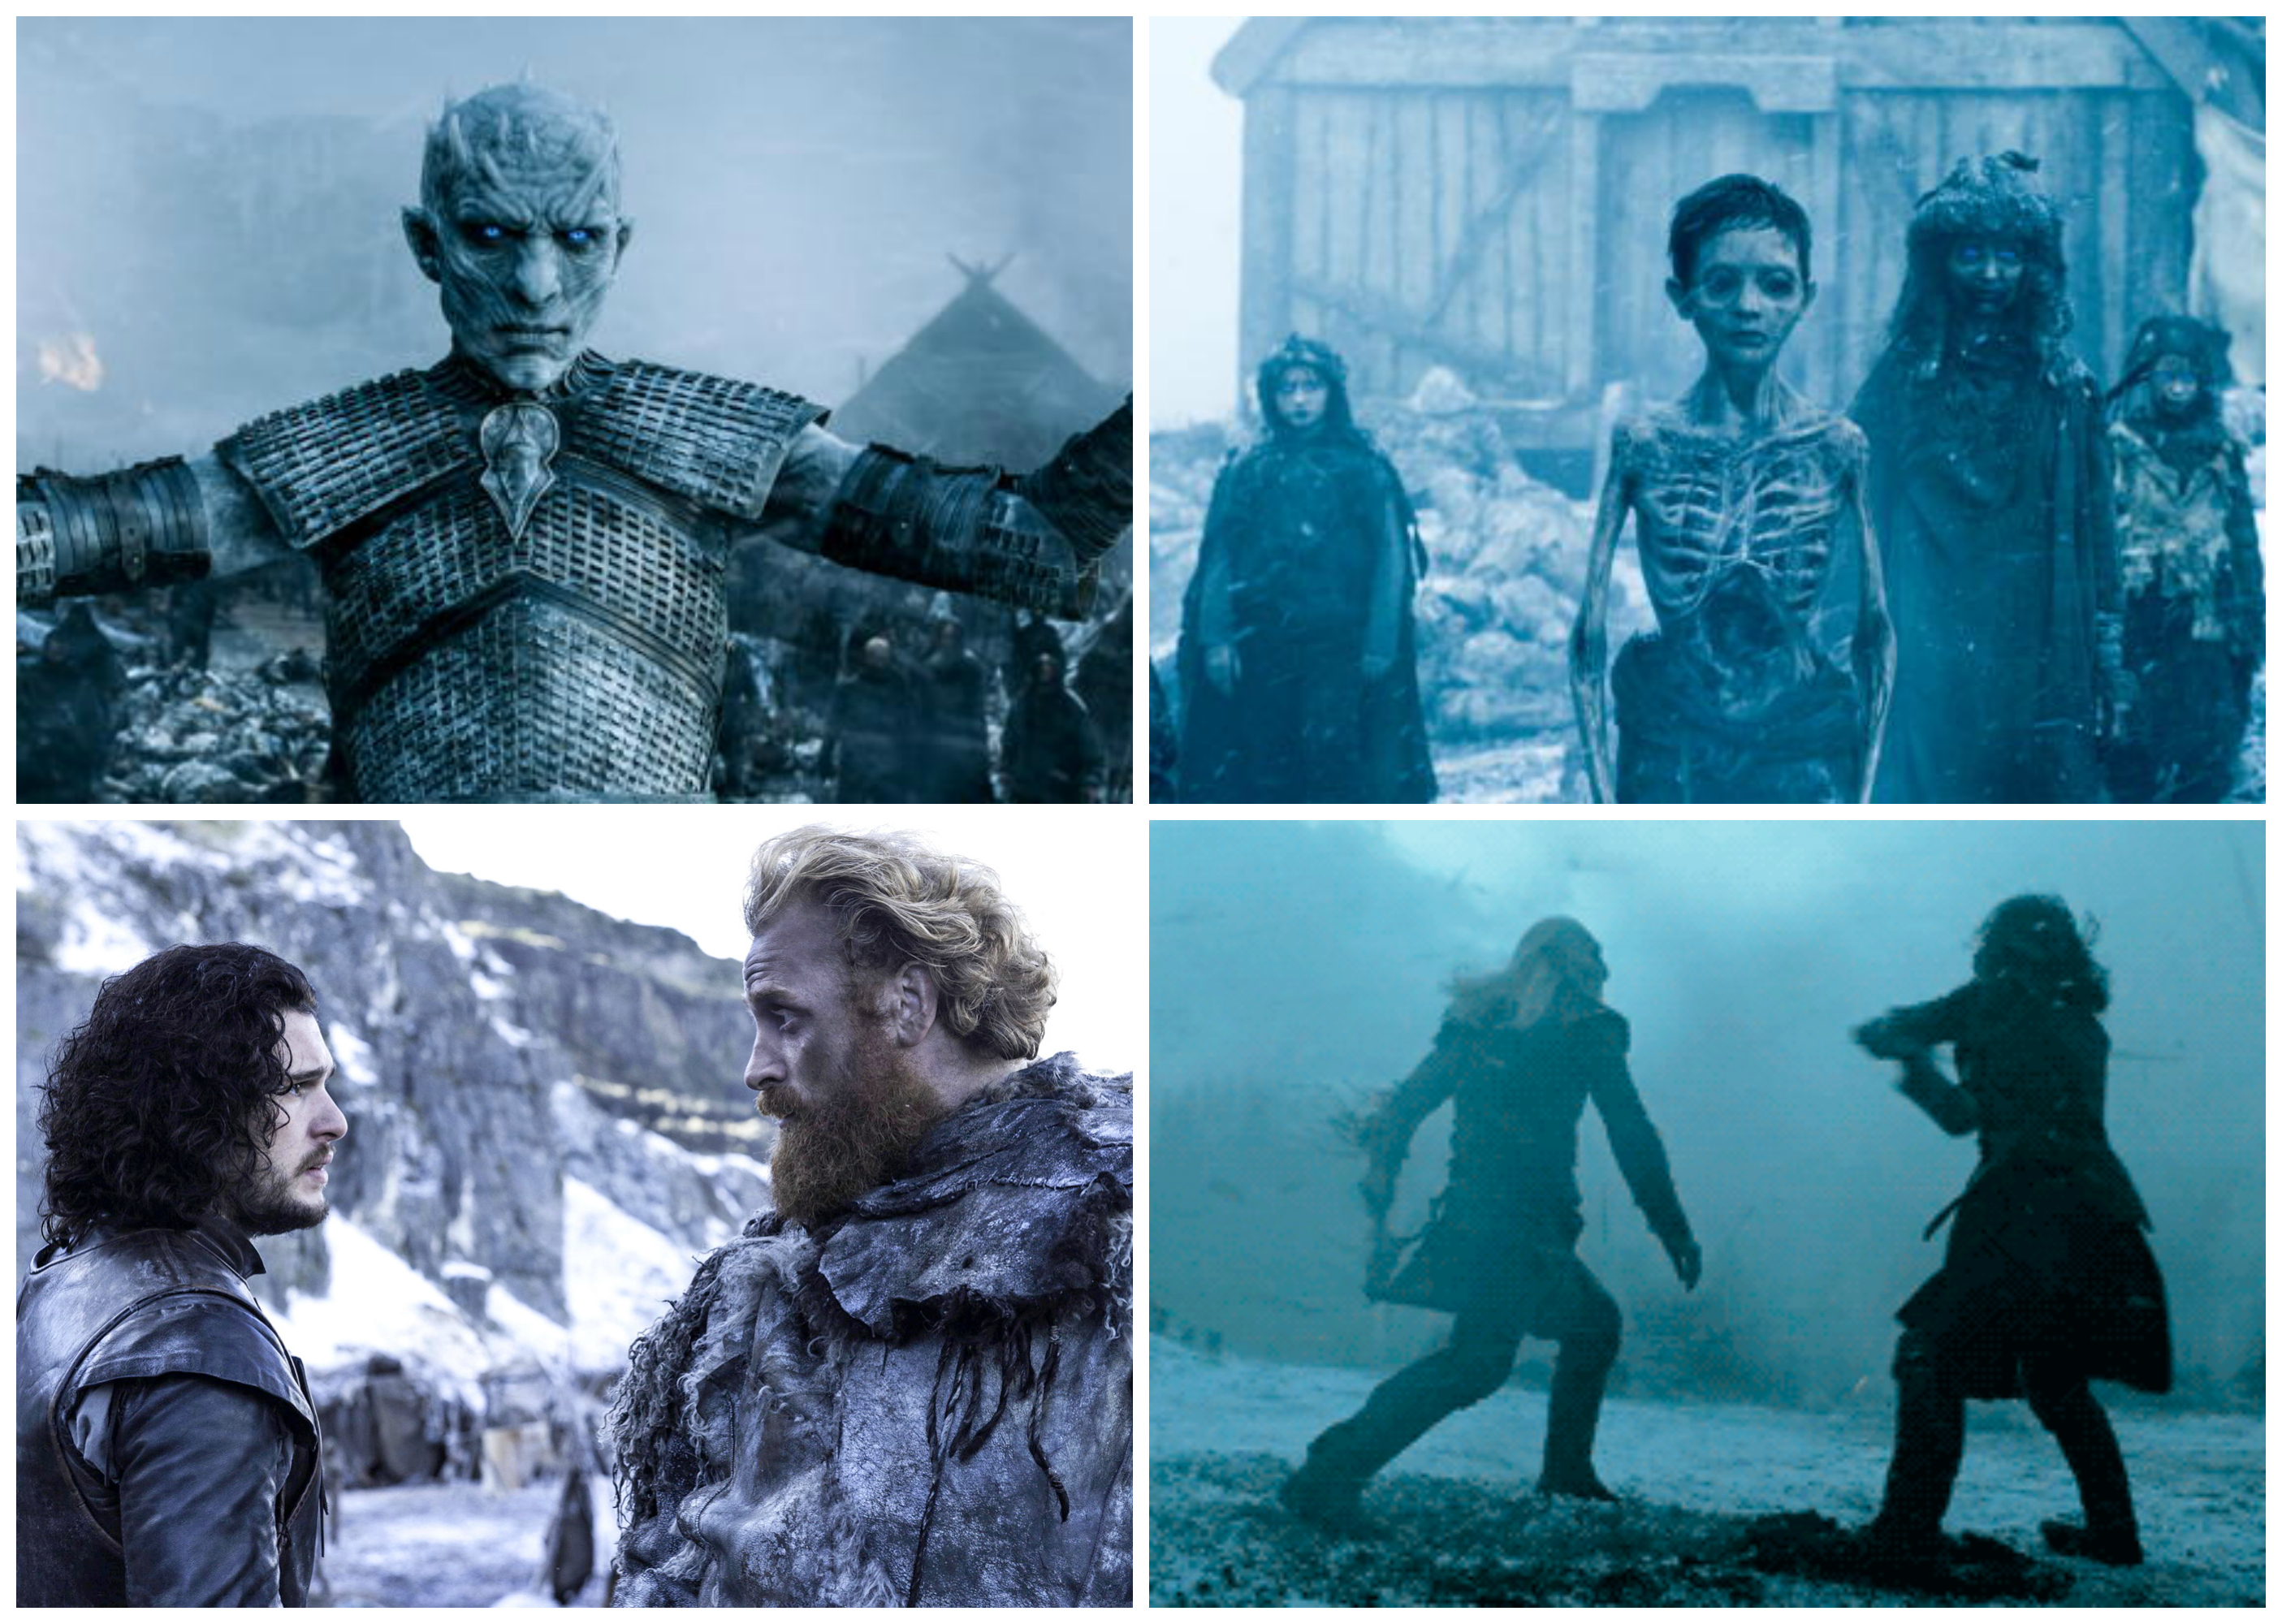 Episode 225: Game of Thrones - S5E8 - Hardhome